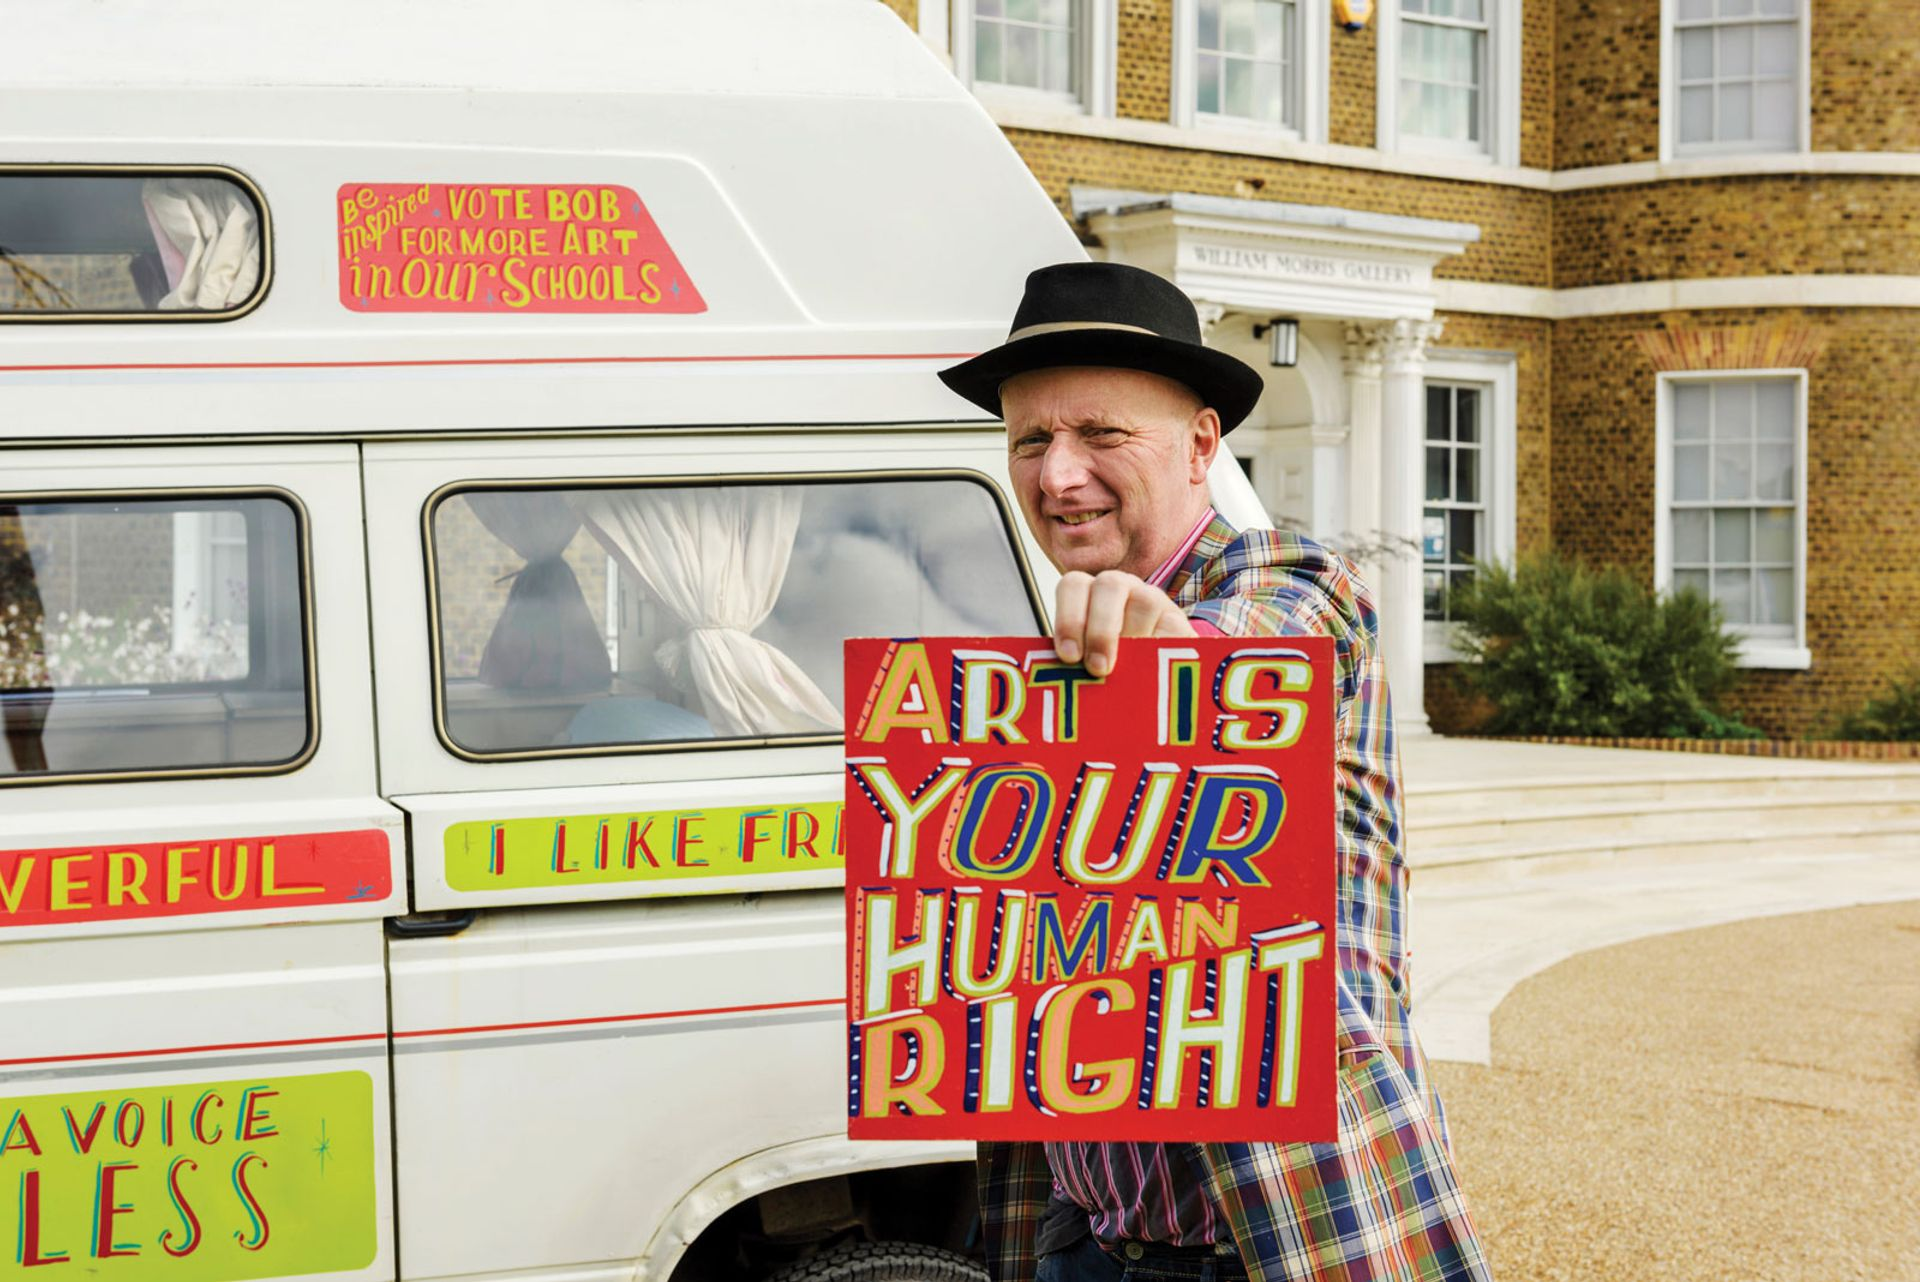 Bob and Roberta Smith © Paul Tucker all rights reserved